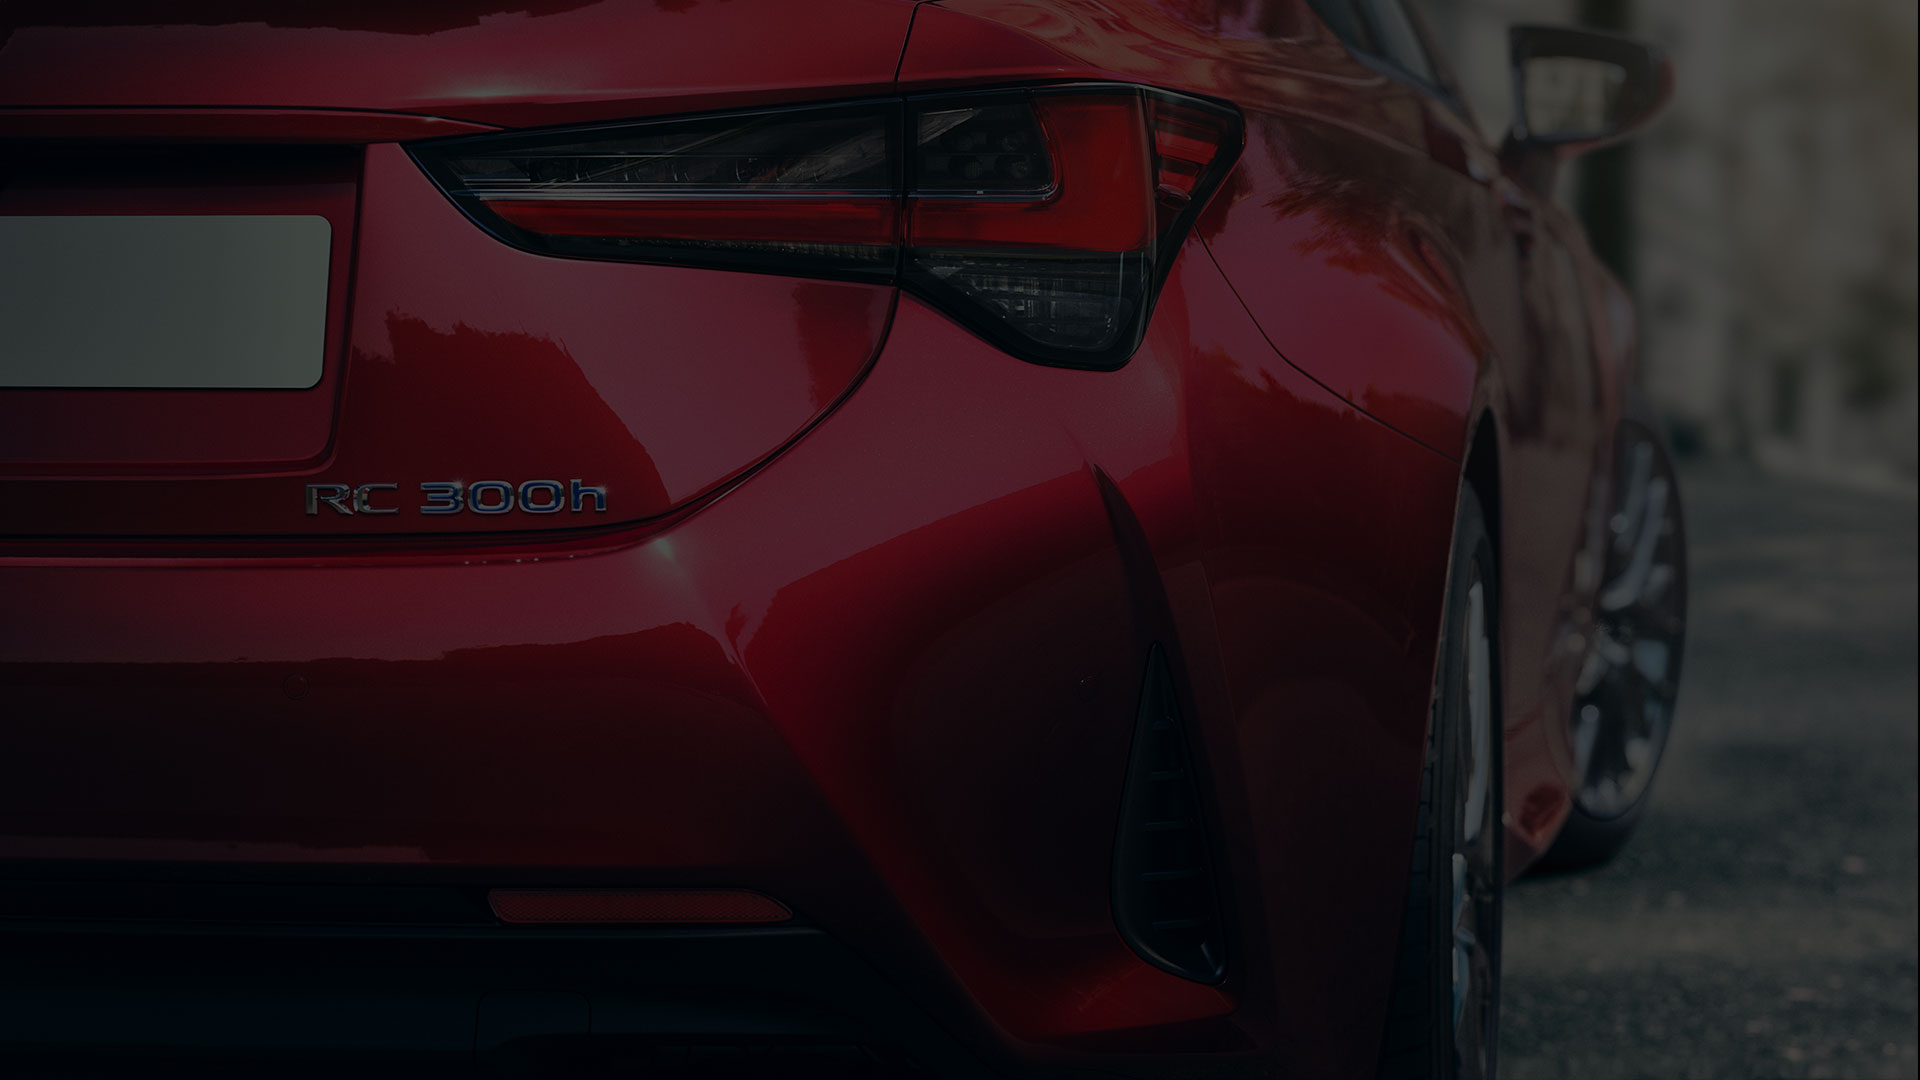 2018 lexus new rc razor sharp quote background